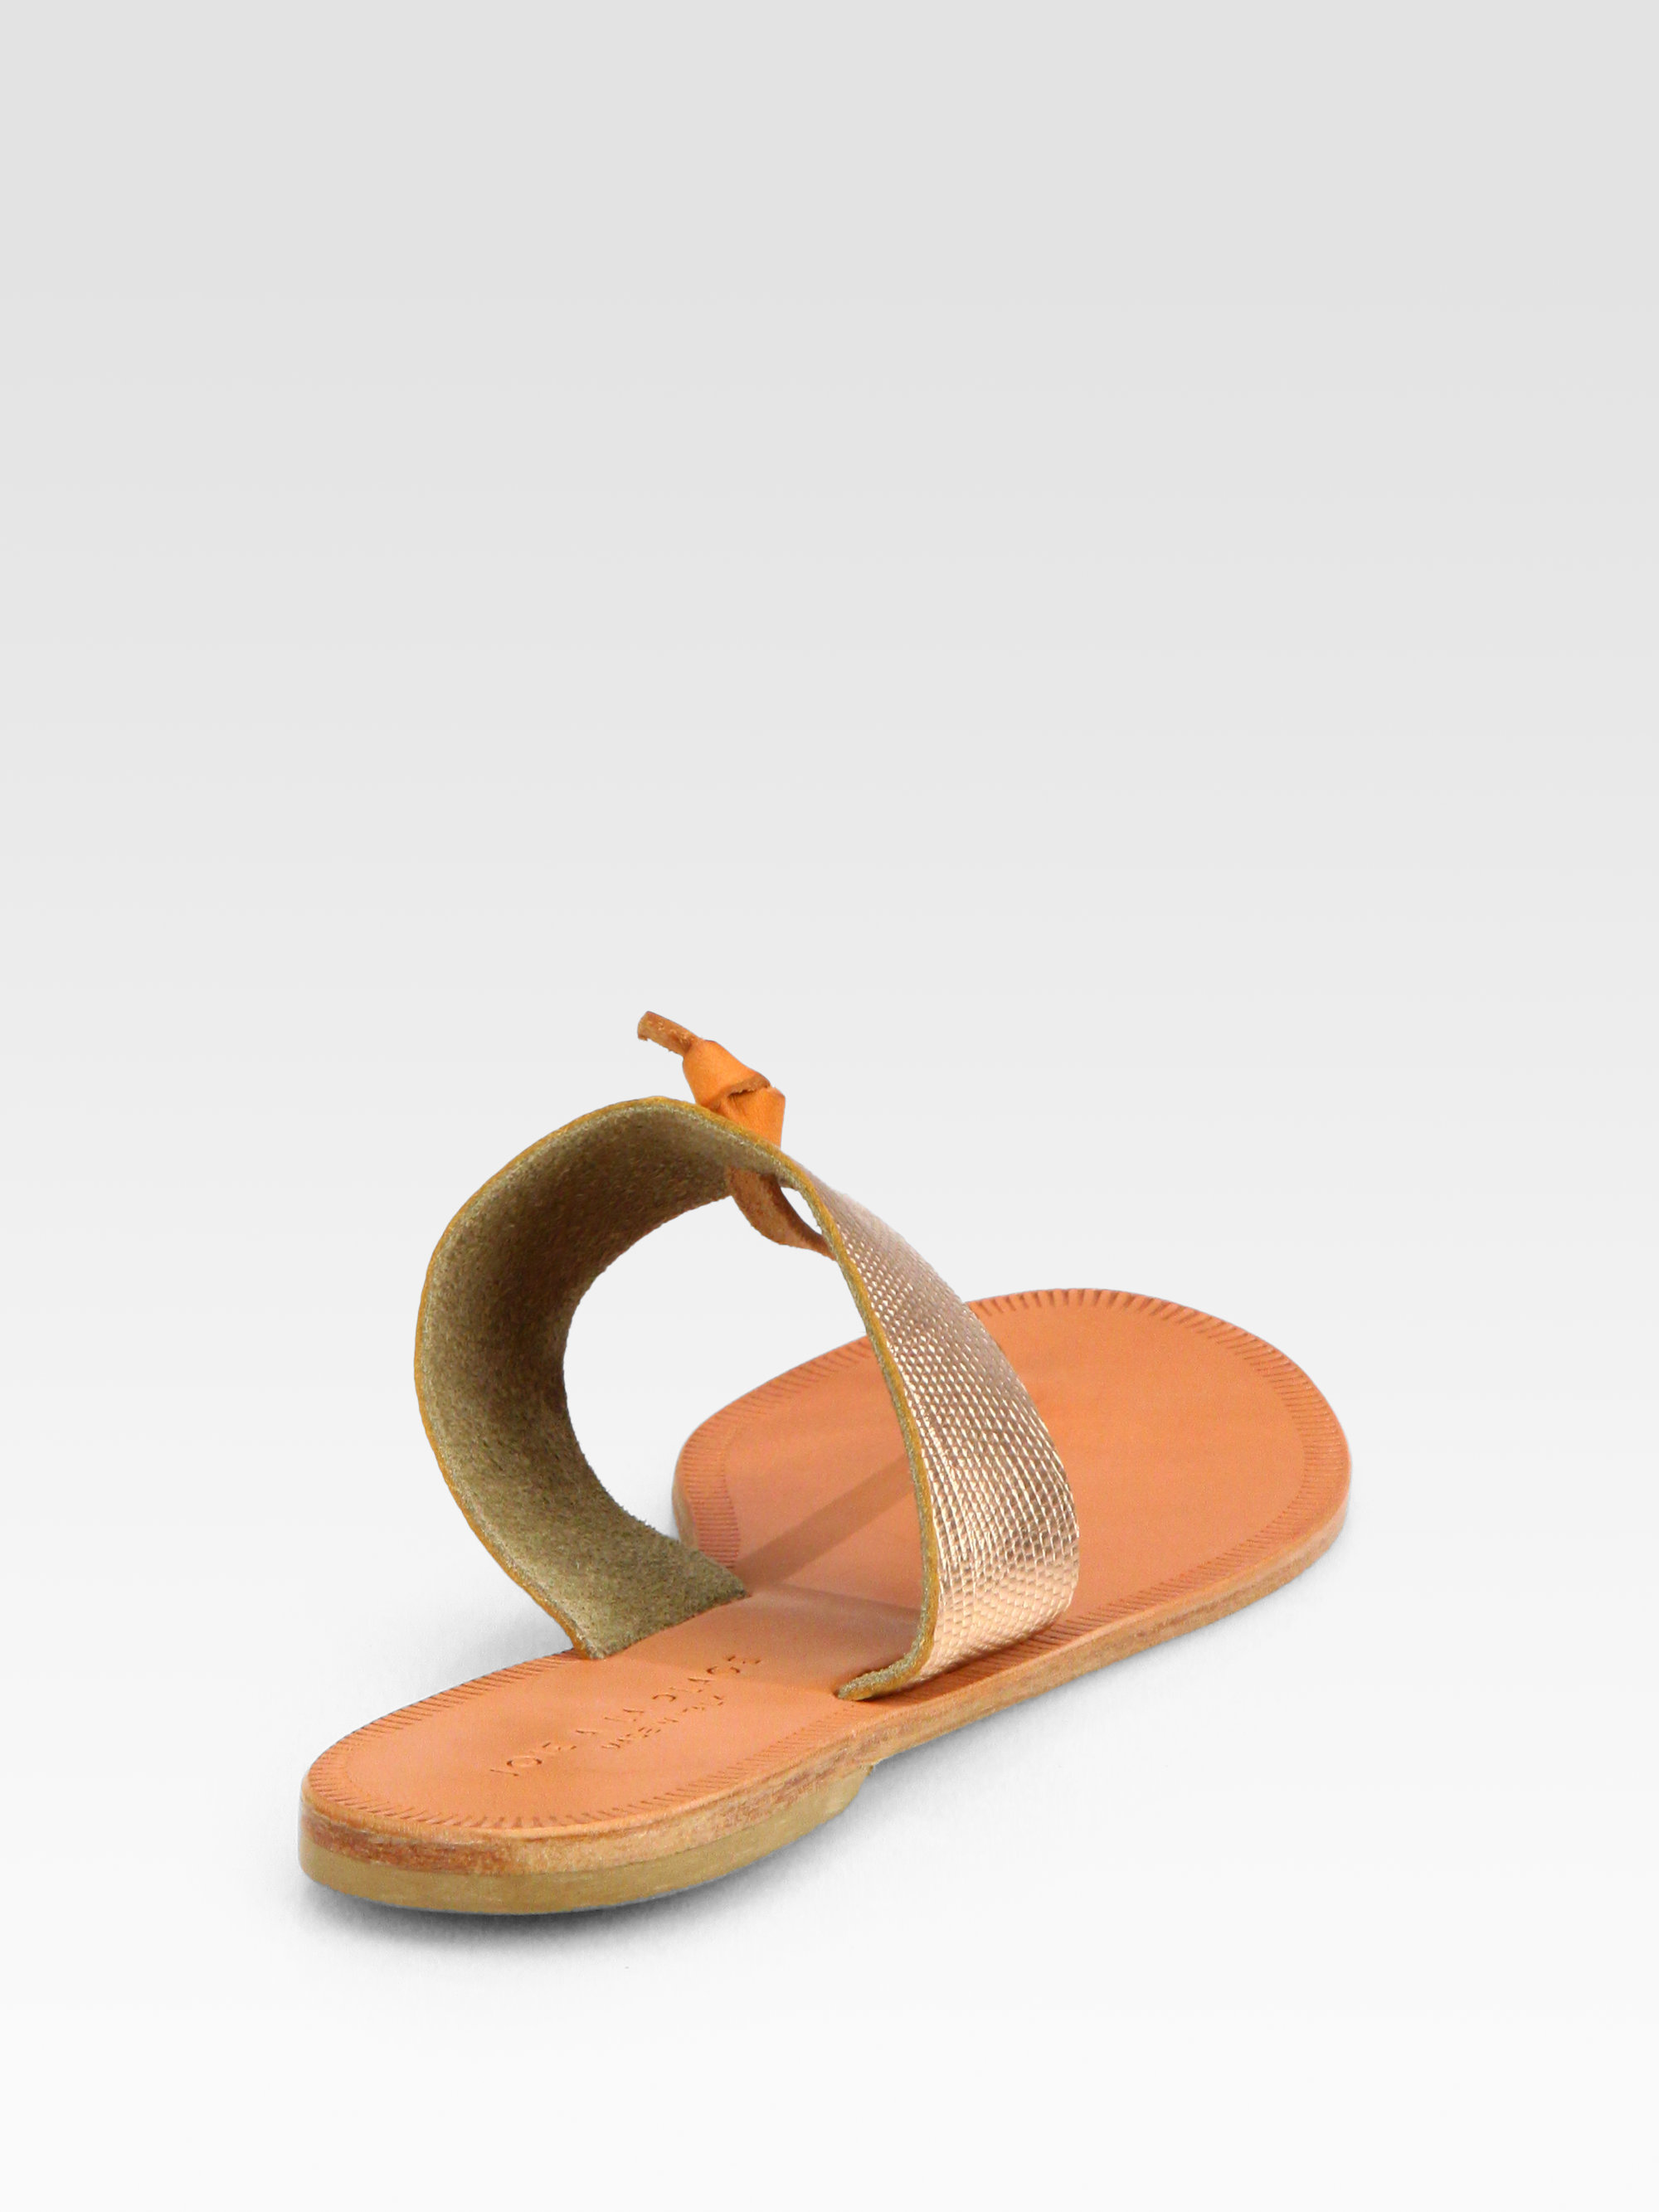 129f0dfd885 Lyst - Joie Nice Metallic Leather Thong Sandals in Metallic